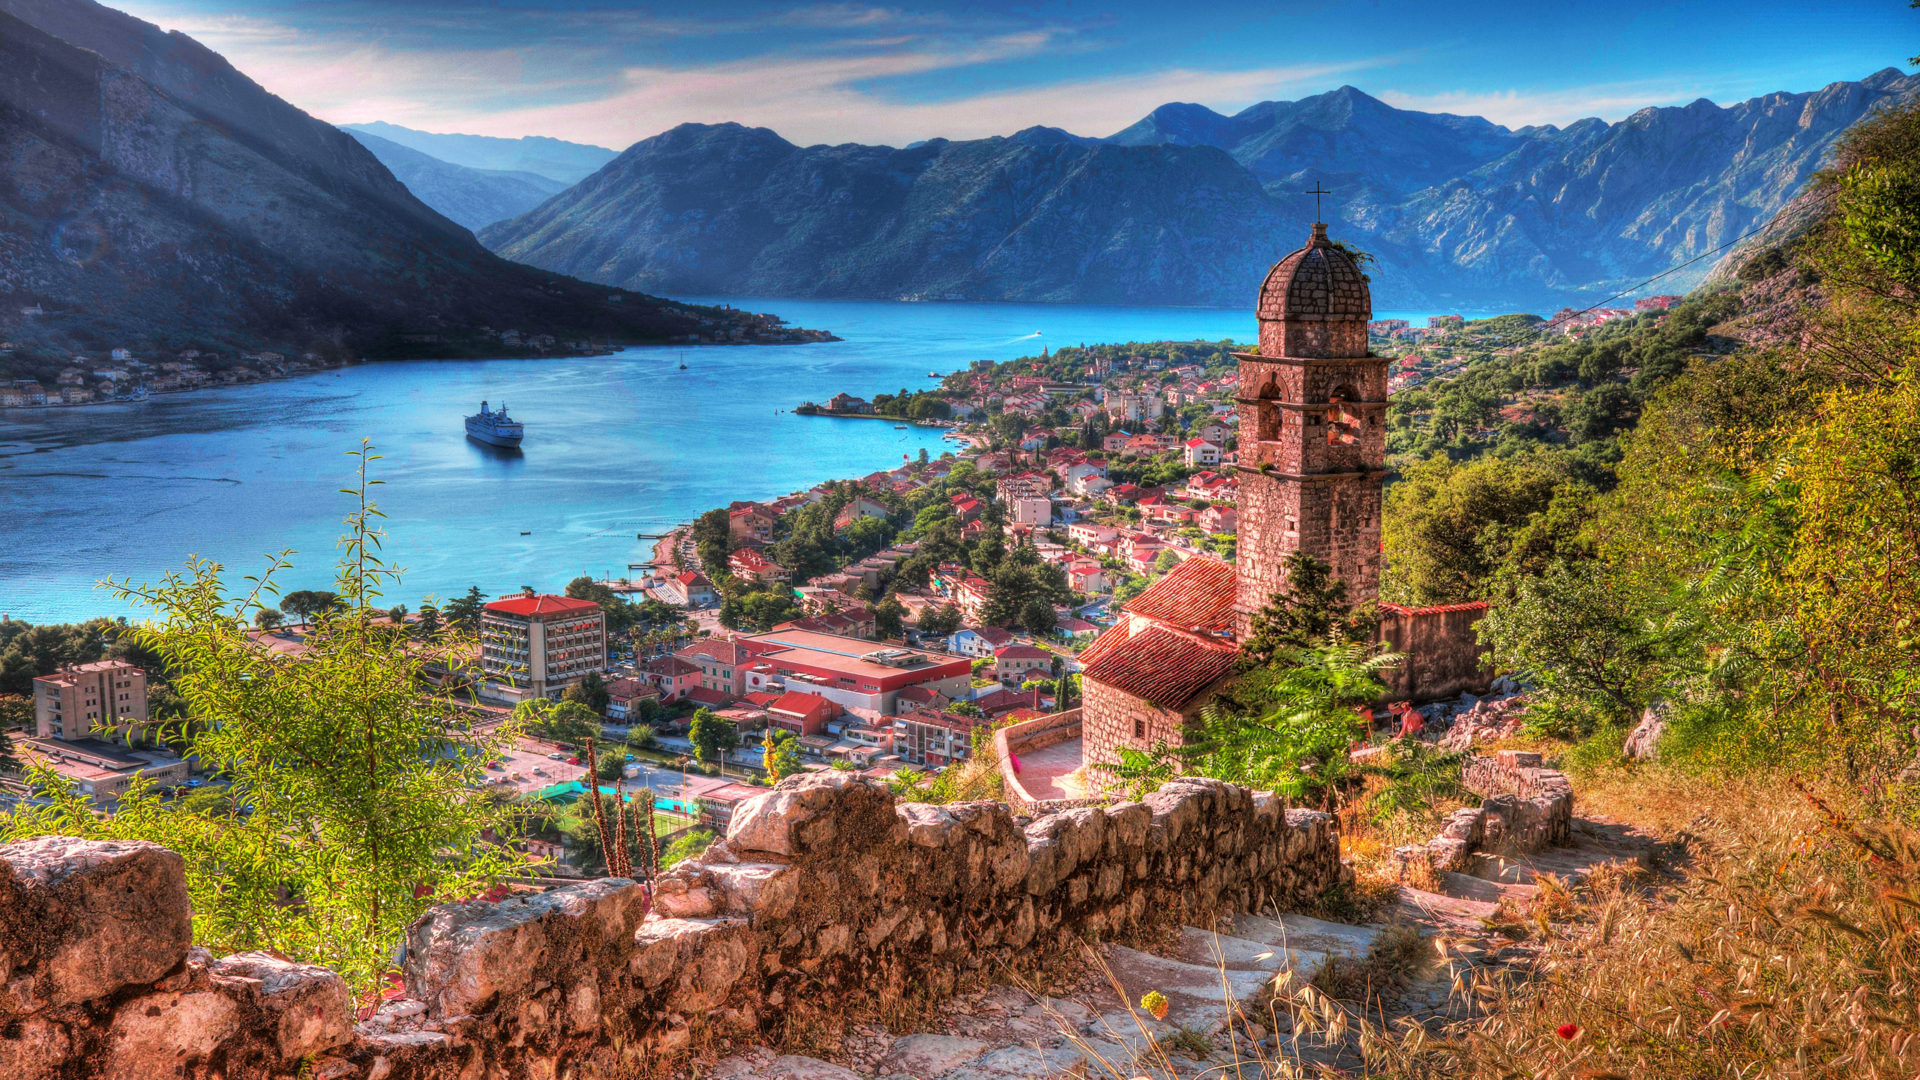 Seoul Wallpaper Iphone The Town Of Kotor In Montenegro Nice Old Town 2560x1600